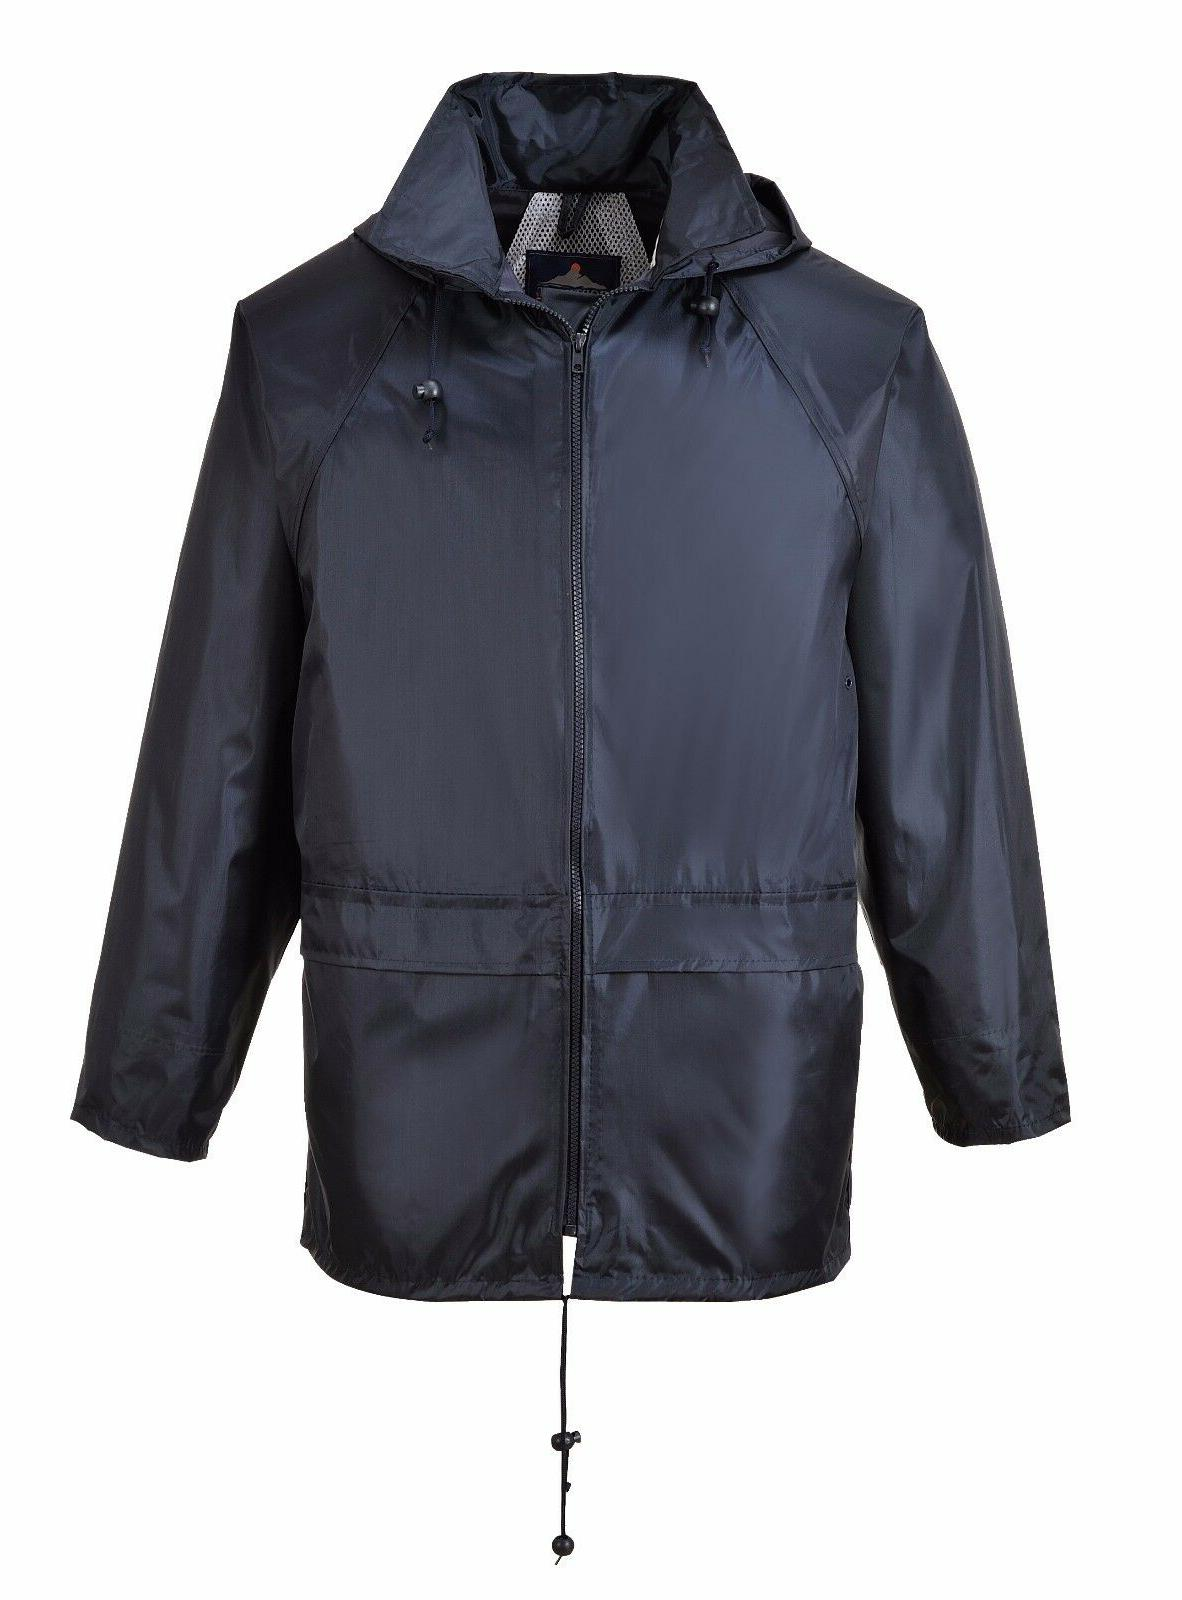 Portwest US440 Classic Jacket, with